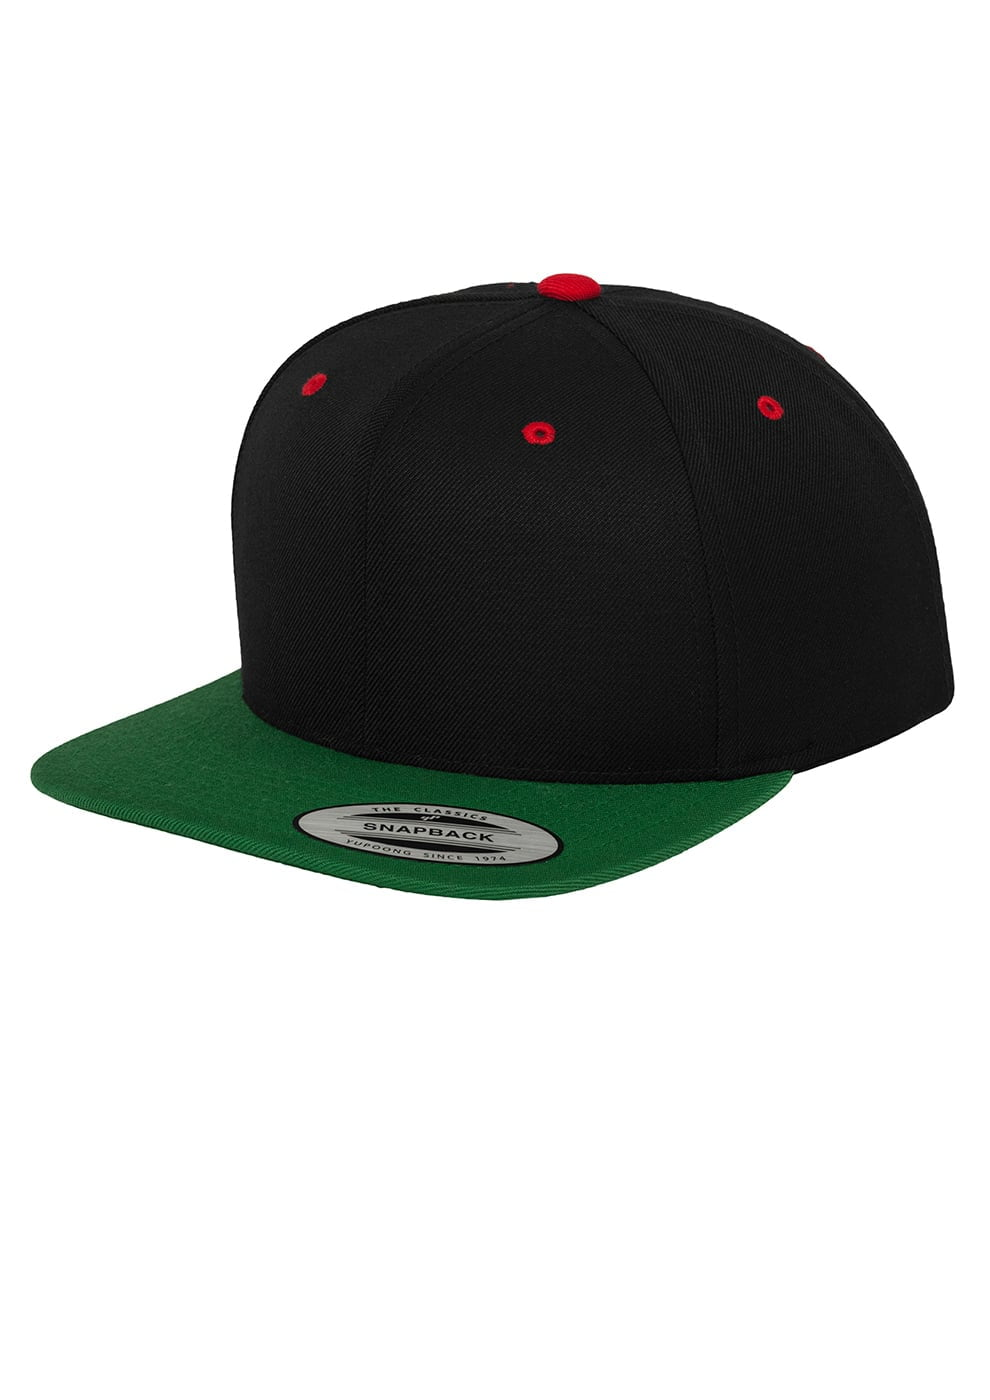 Mixed up Snapback